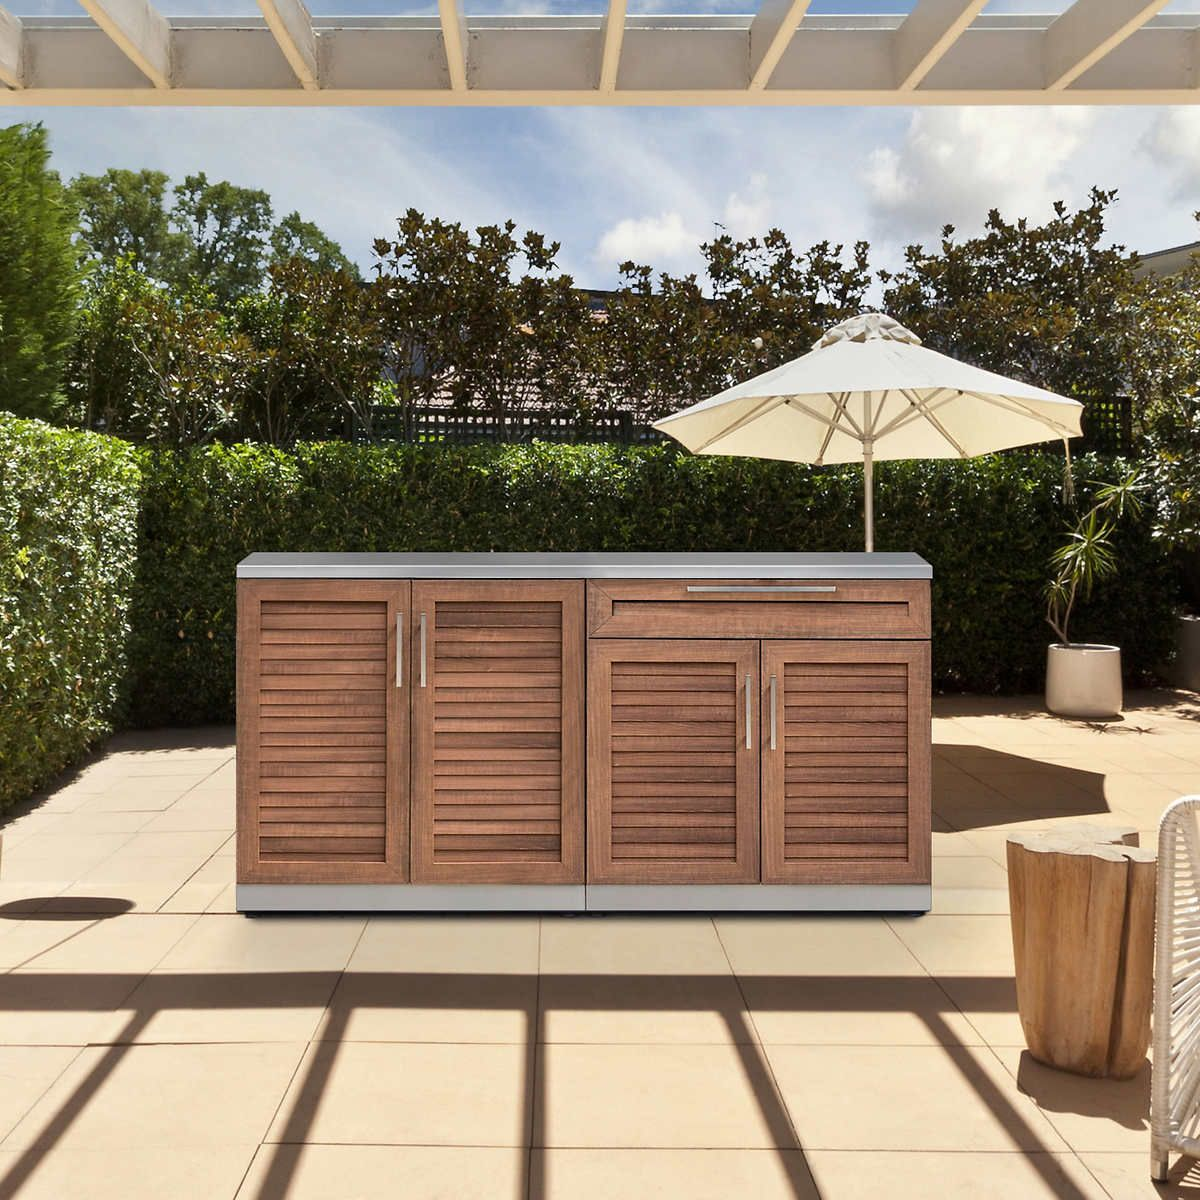 Newage Products Grove Stainless Steel 3 Piece Outdoor Kitchen Outdoor Kitchen Countertops Outdoor Kitchen Design Outdoor